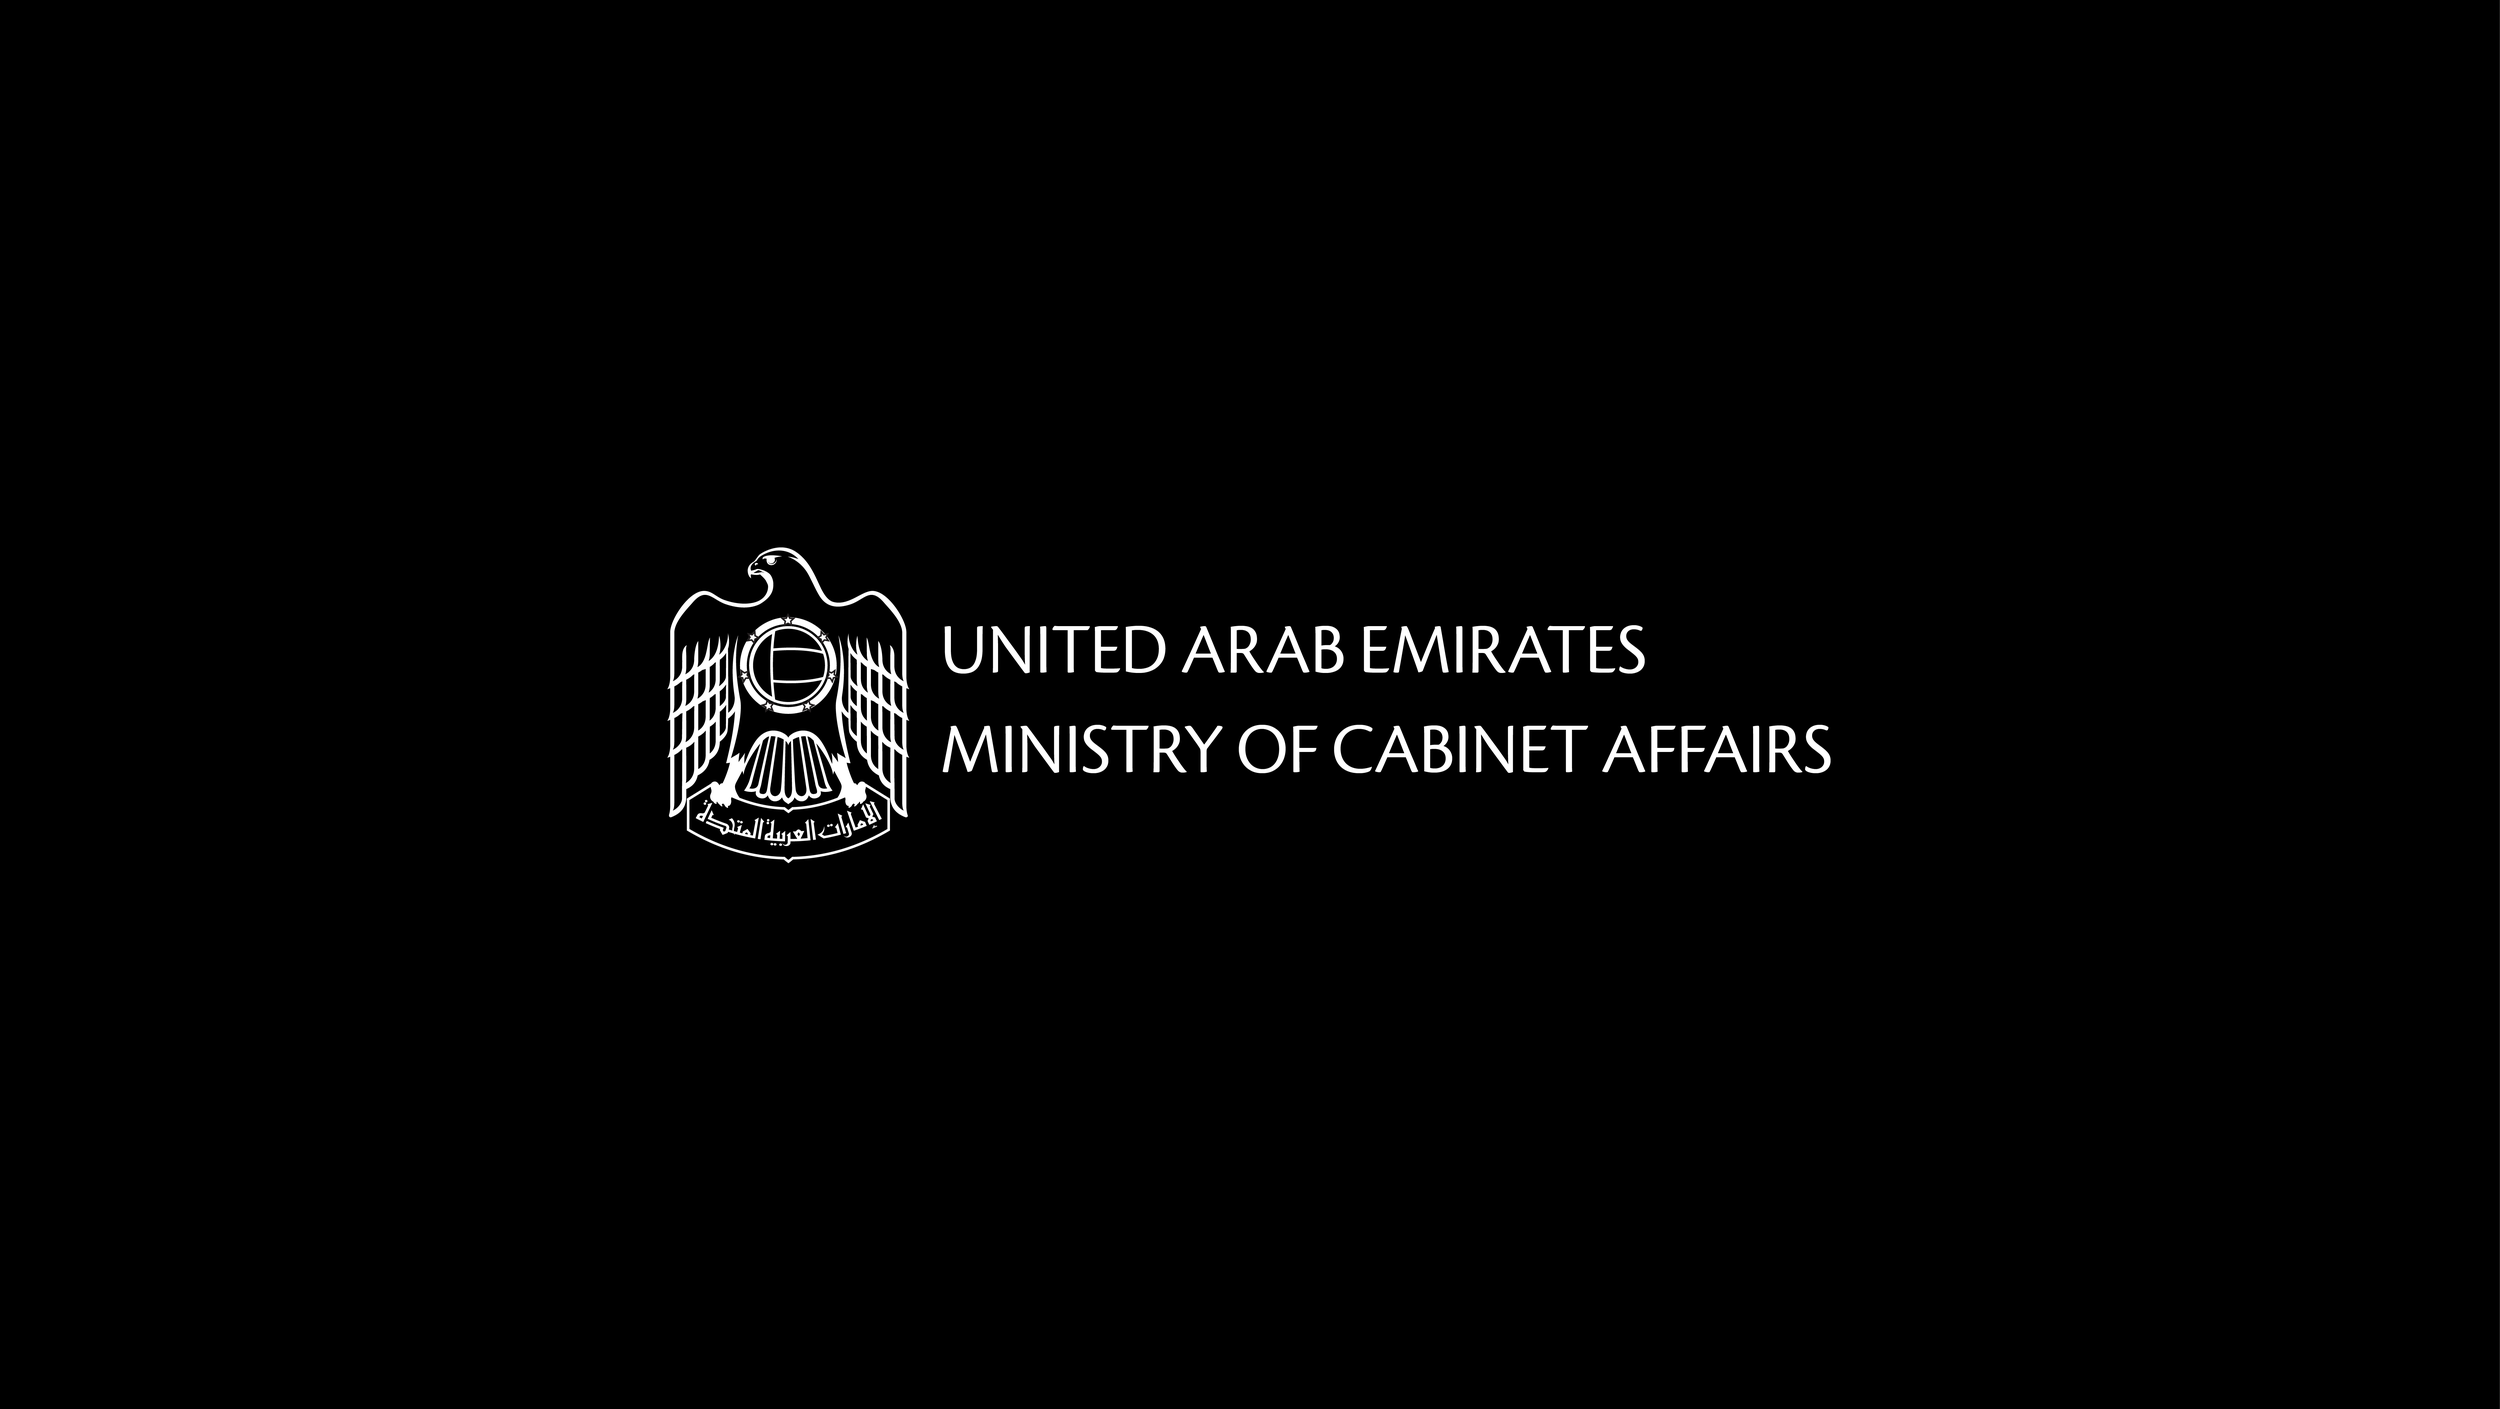 UAE Ministry of Cabinet Affairs Dubai Video Production